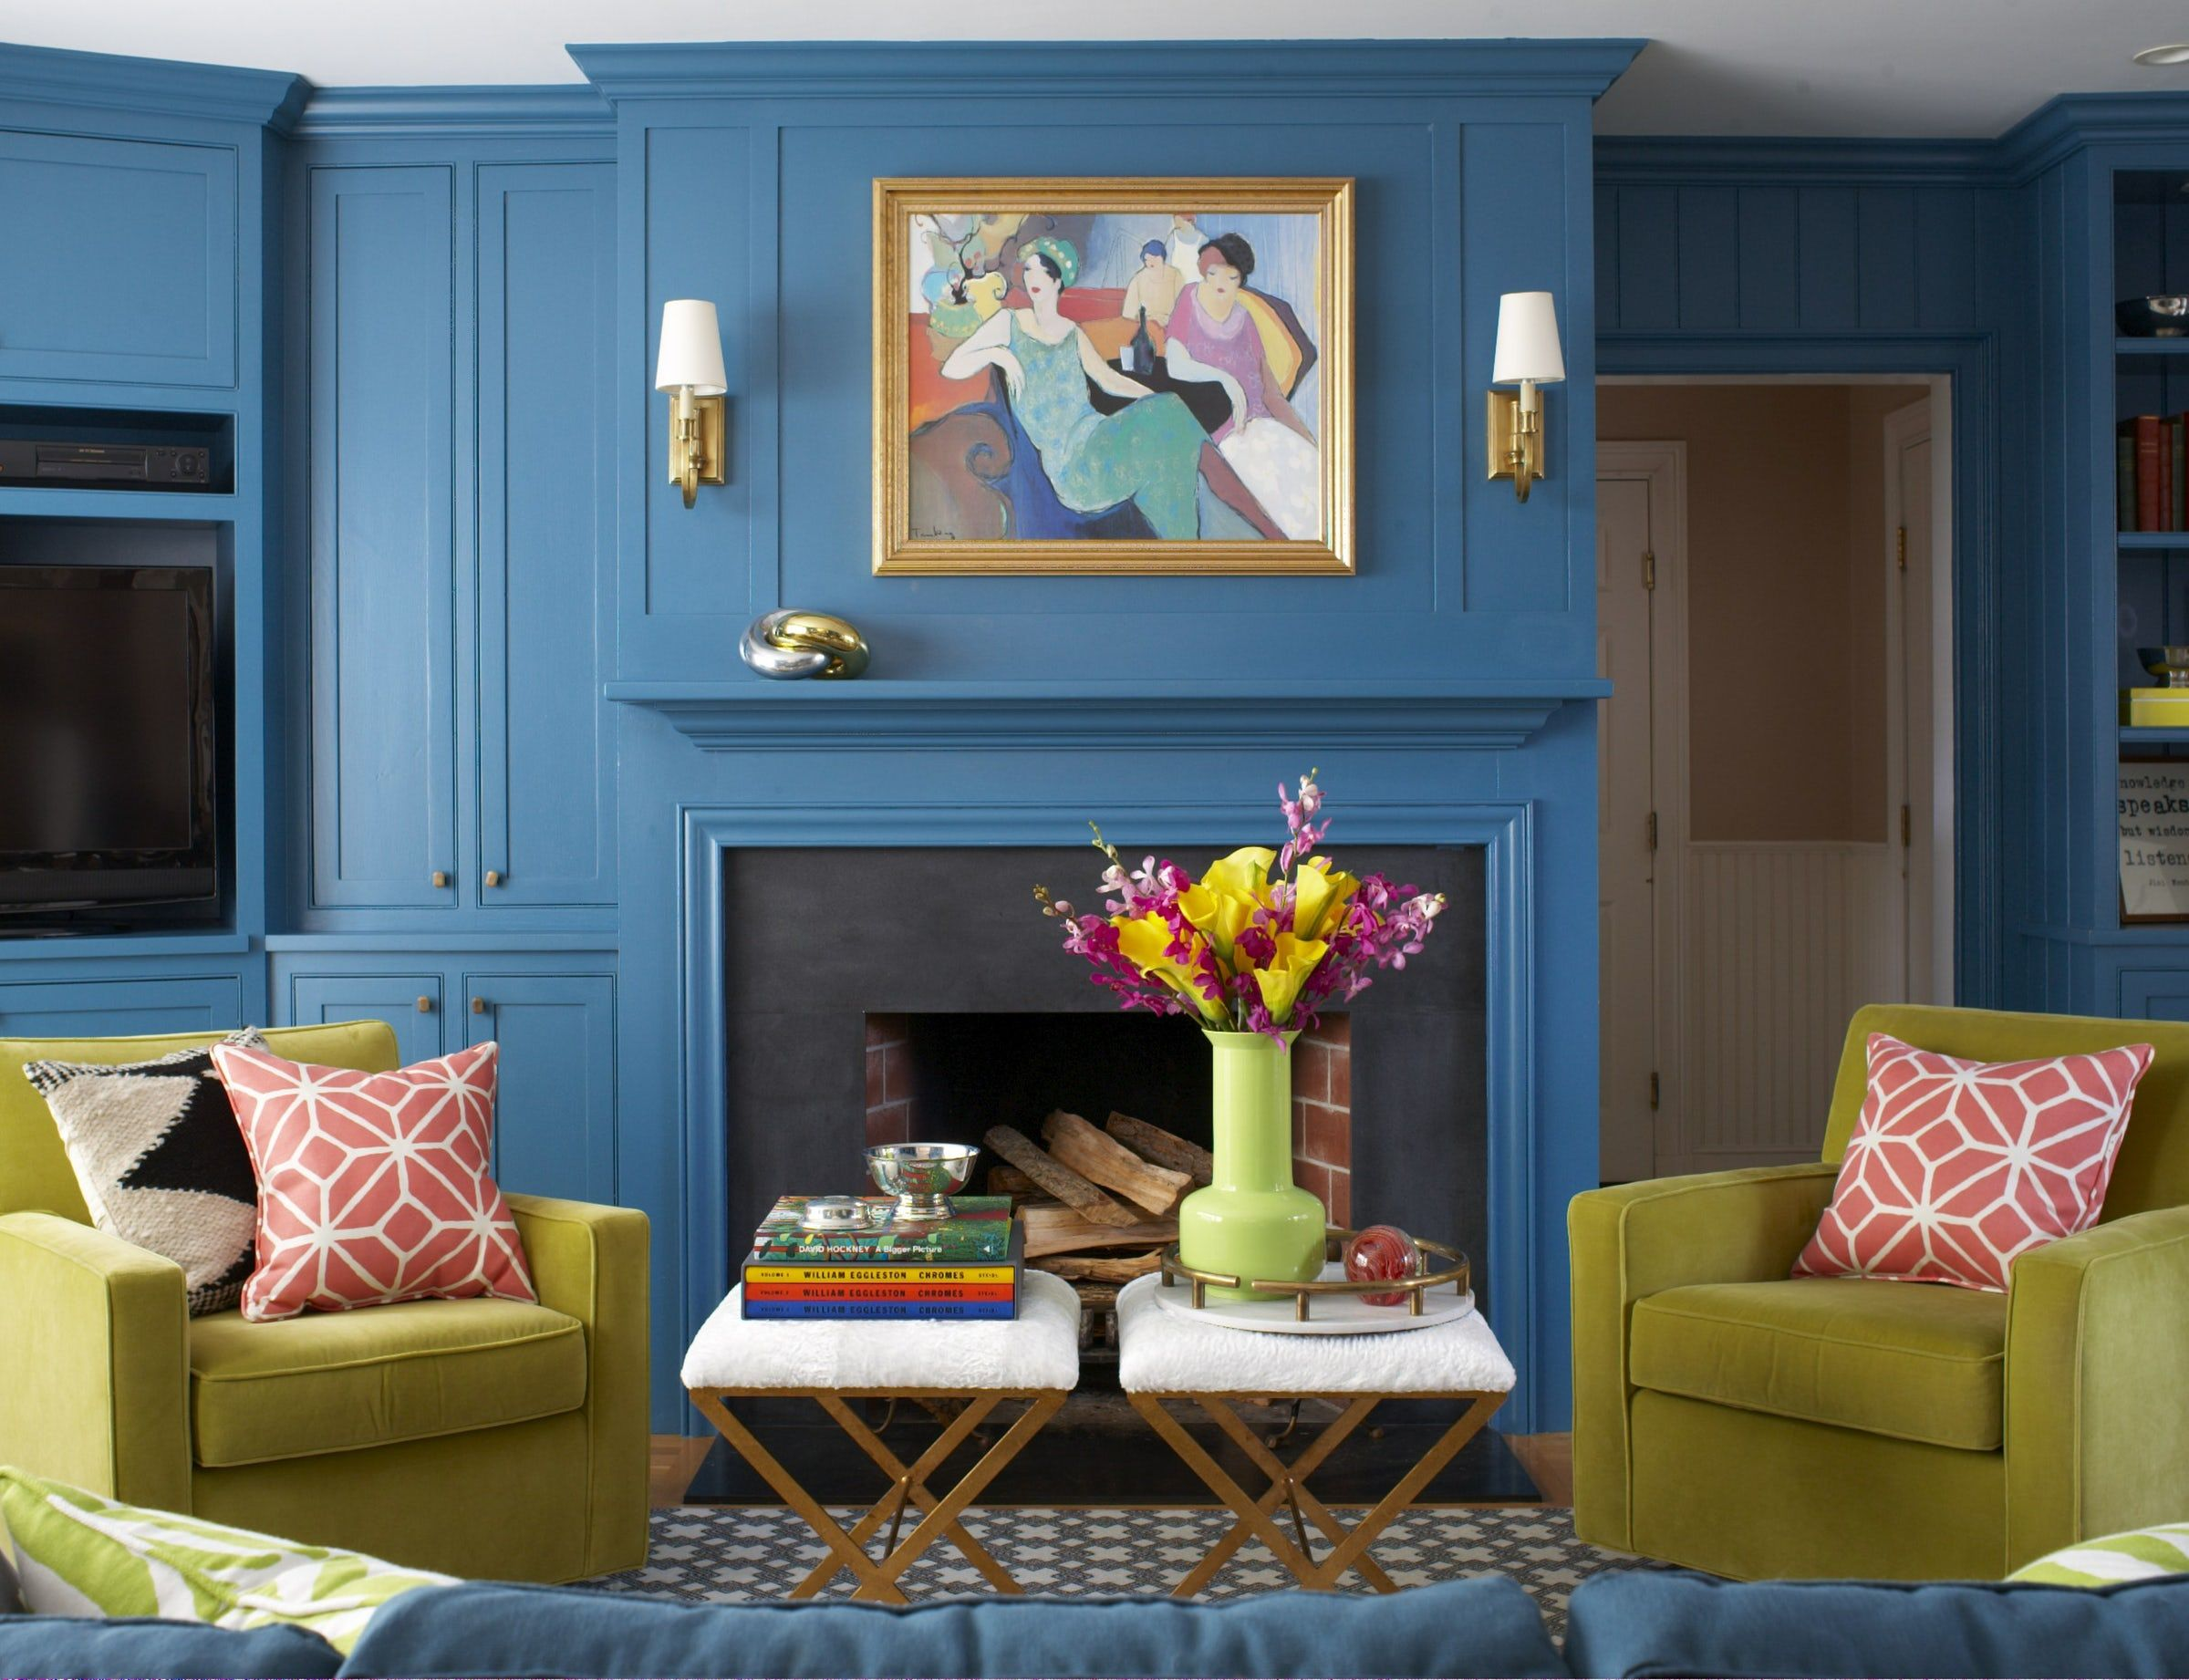 40 vibrant room color ideas how to decorate with bright colorsDrawing Room Colour Design #9